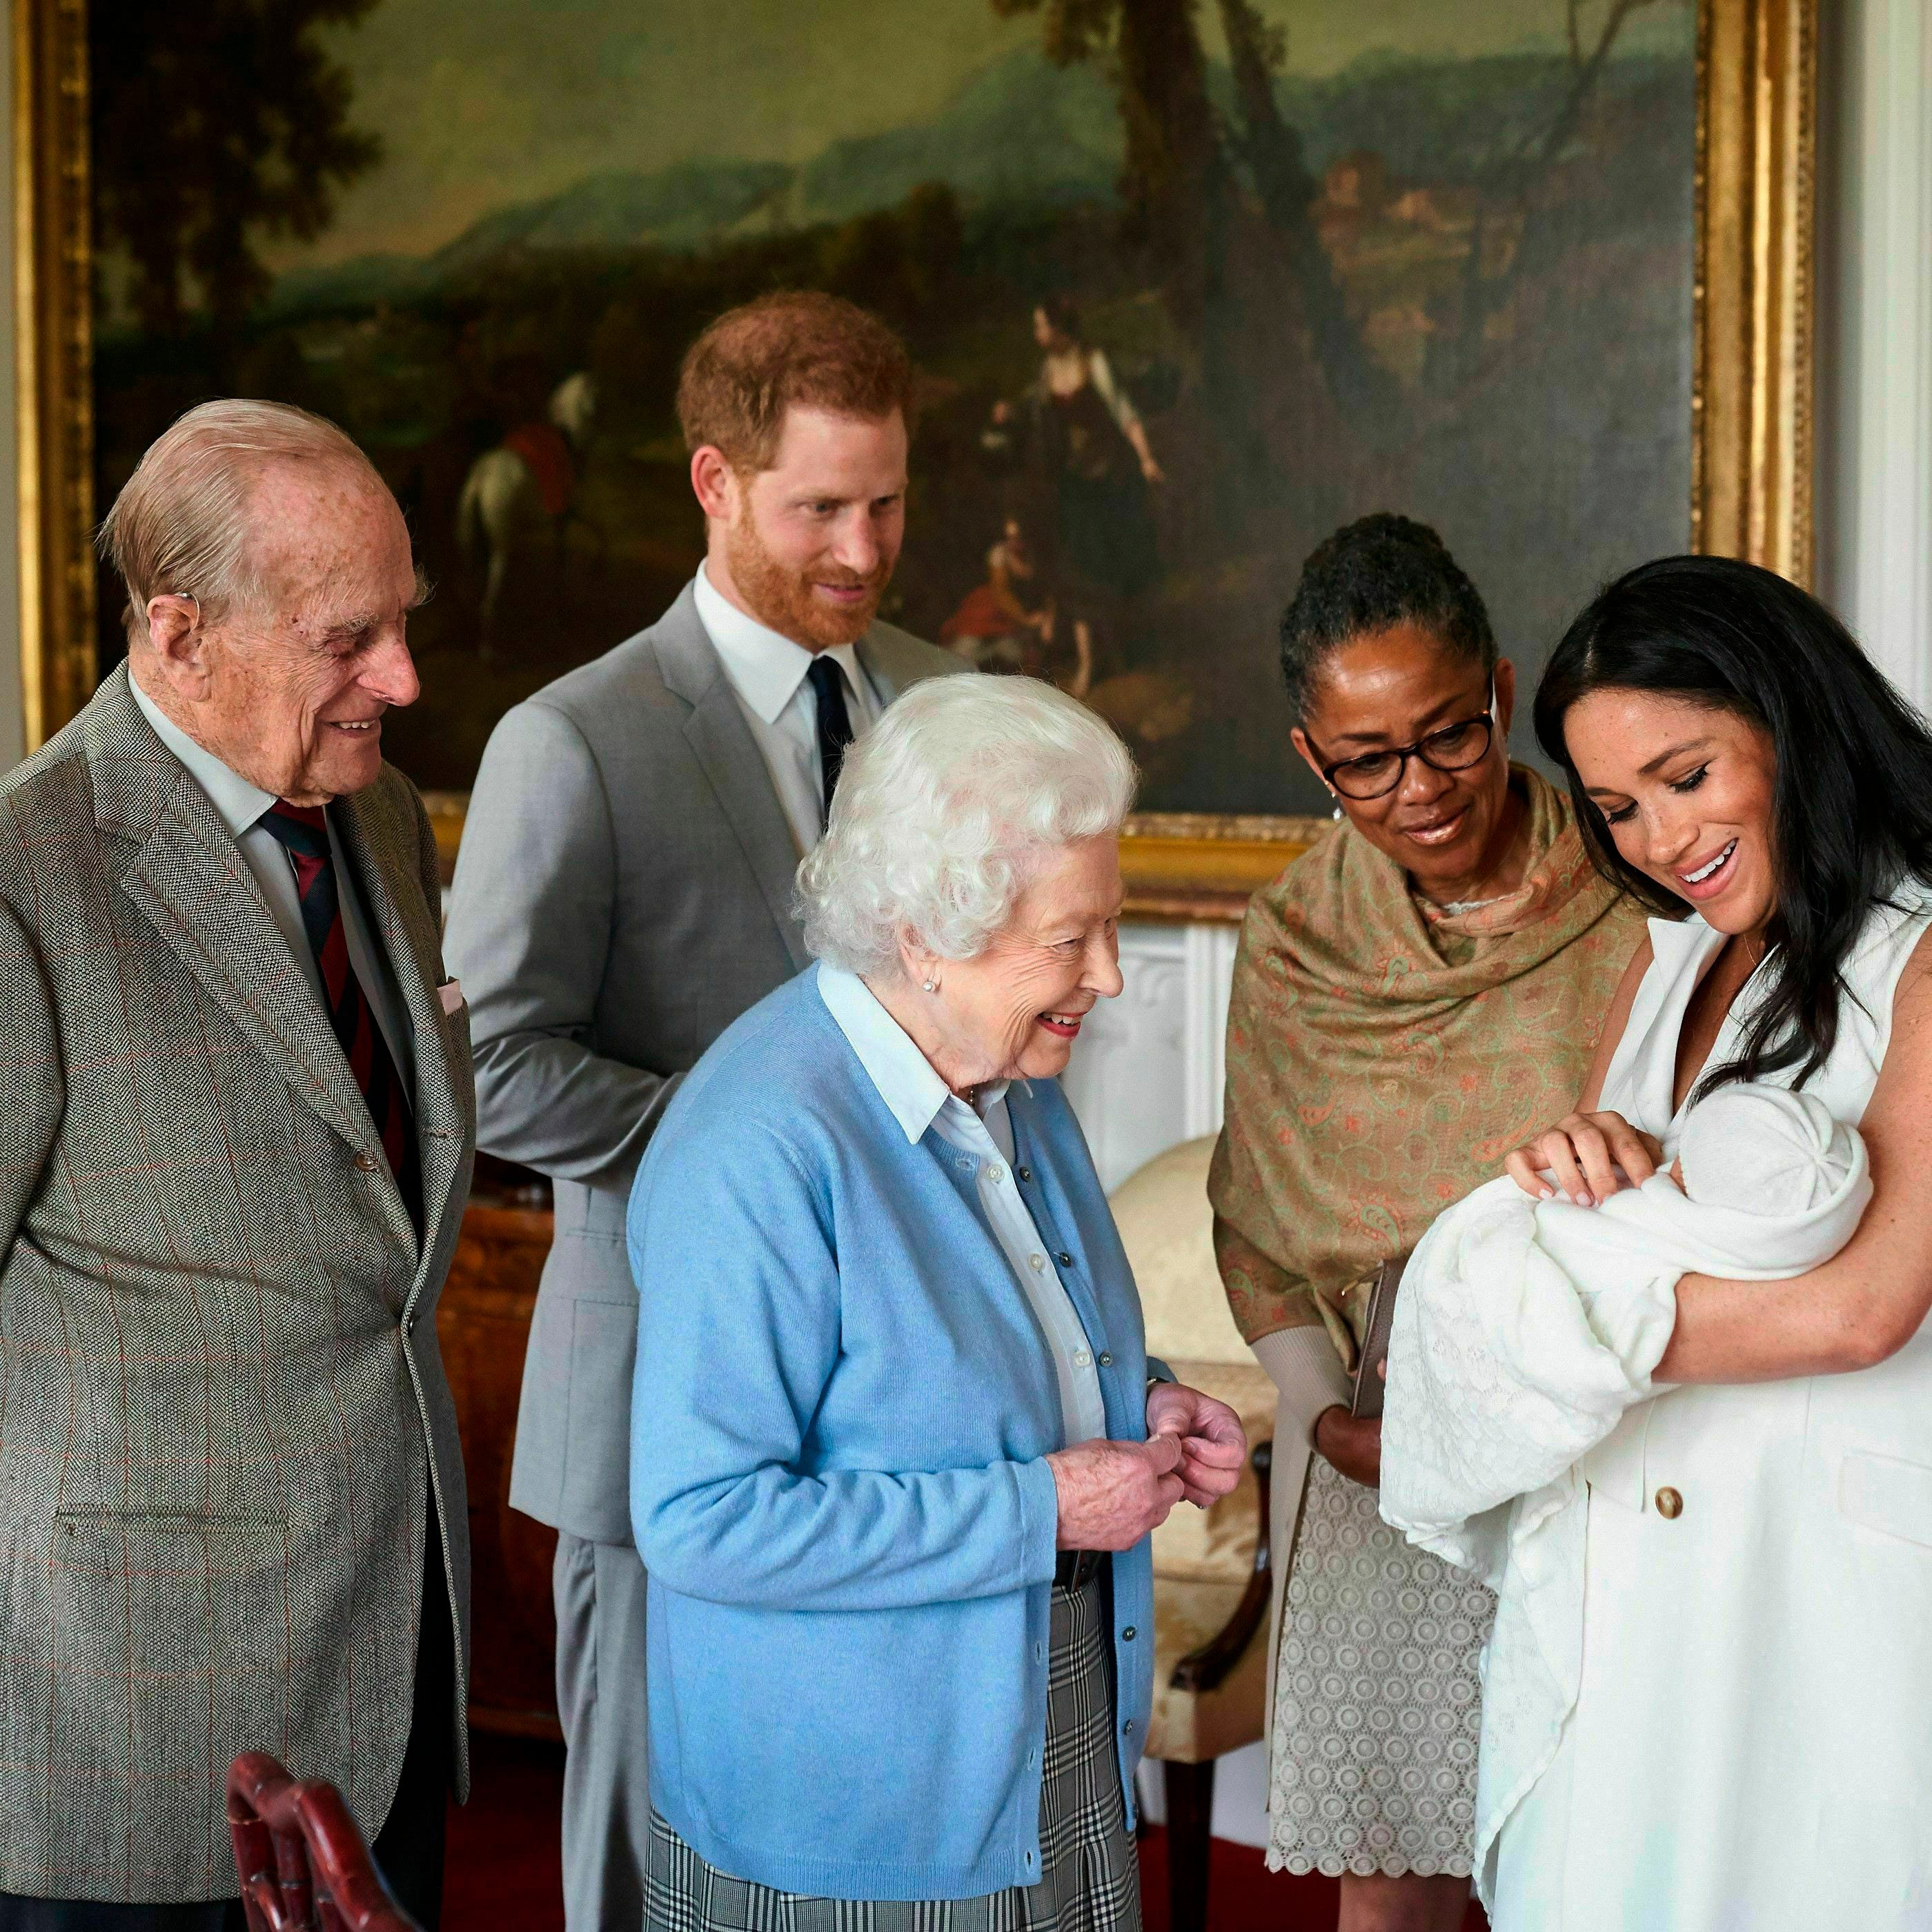 archie mountbatten windsor turns 1 stars in adorable video archie mountbatten windsor turns 1